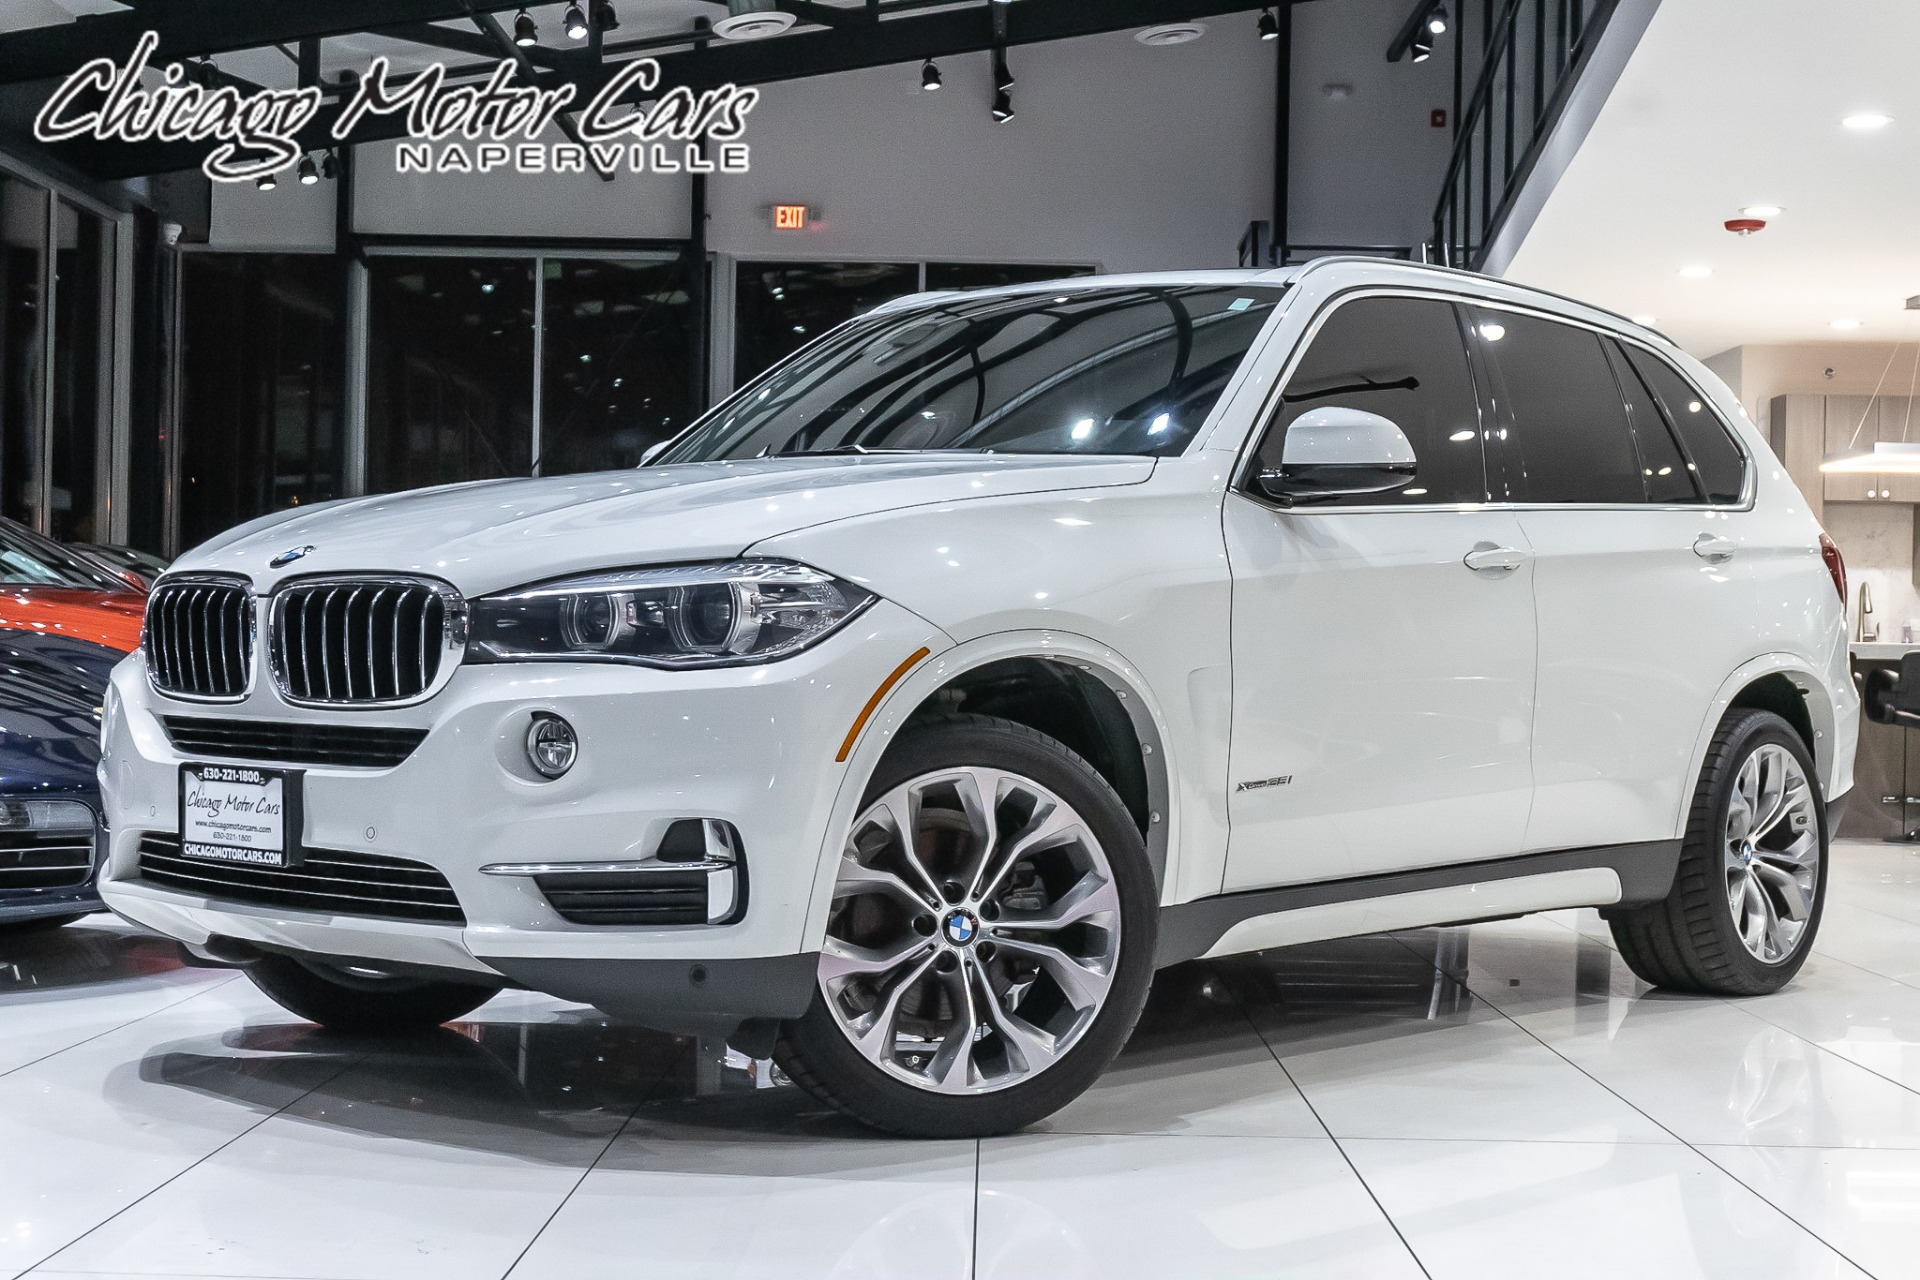 Used 2016 Bmw X5 Xdrive35i Suv Msrp 64 145 For Sale 31 800 Chicago Motor Cars Stock 15613